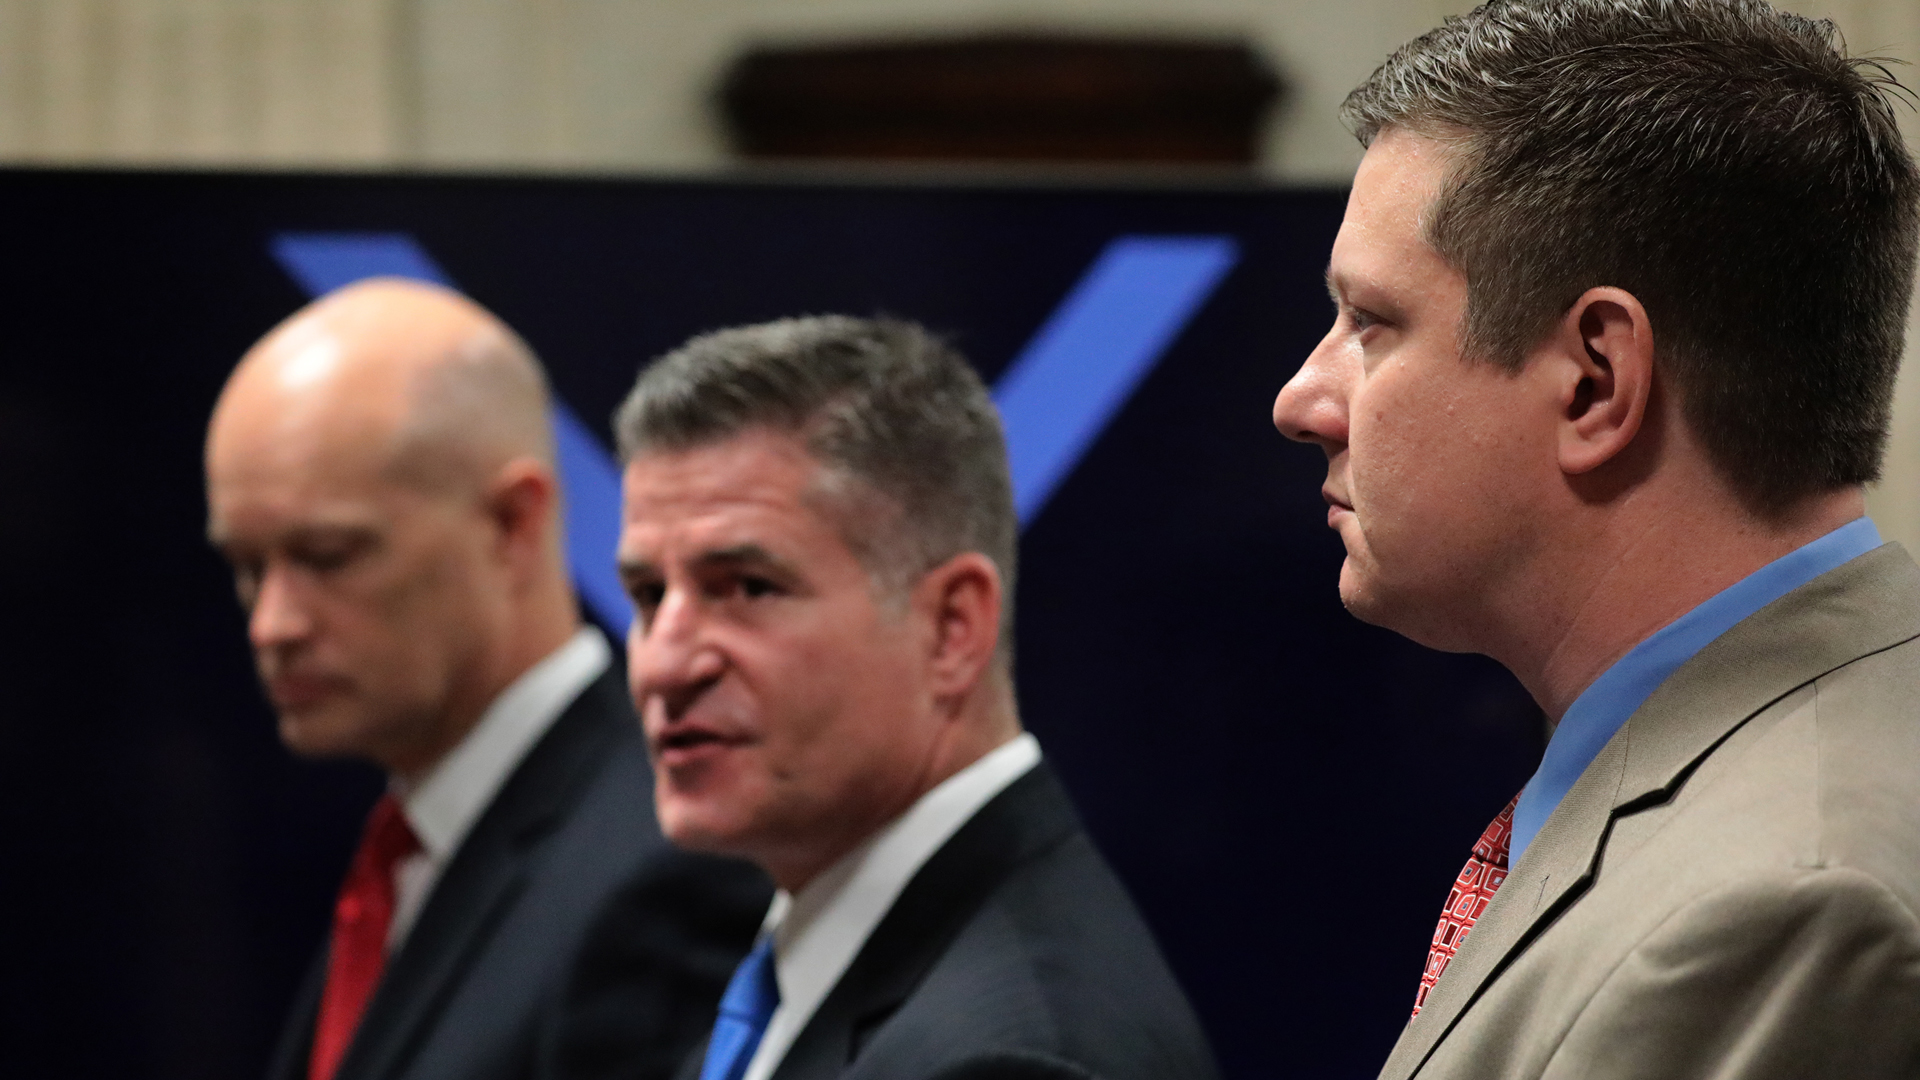 Prosecutor Joseph McMahon, defense attorney Daniel Herbert and Jason Van Dyke approach the judge's bench at the start of Officer Jason Van Dyke trial in the shooting death of Laquan McDonald, at the Leighton Criminal Court Building on Oct. 3, 2018, in Chicago, Illinois. (Credit: Antonio Perez-Pool/Getty Images)